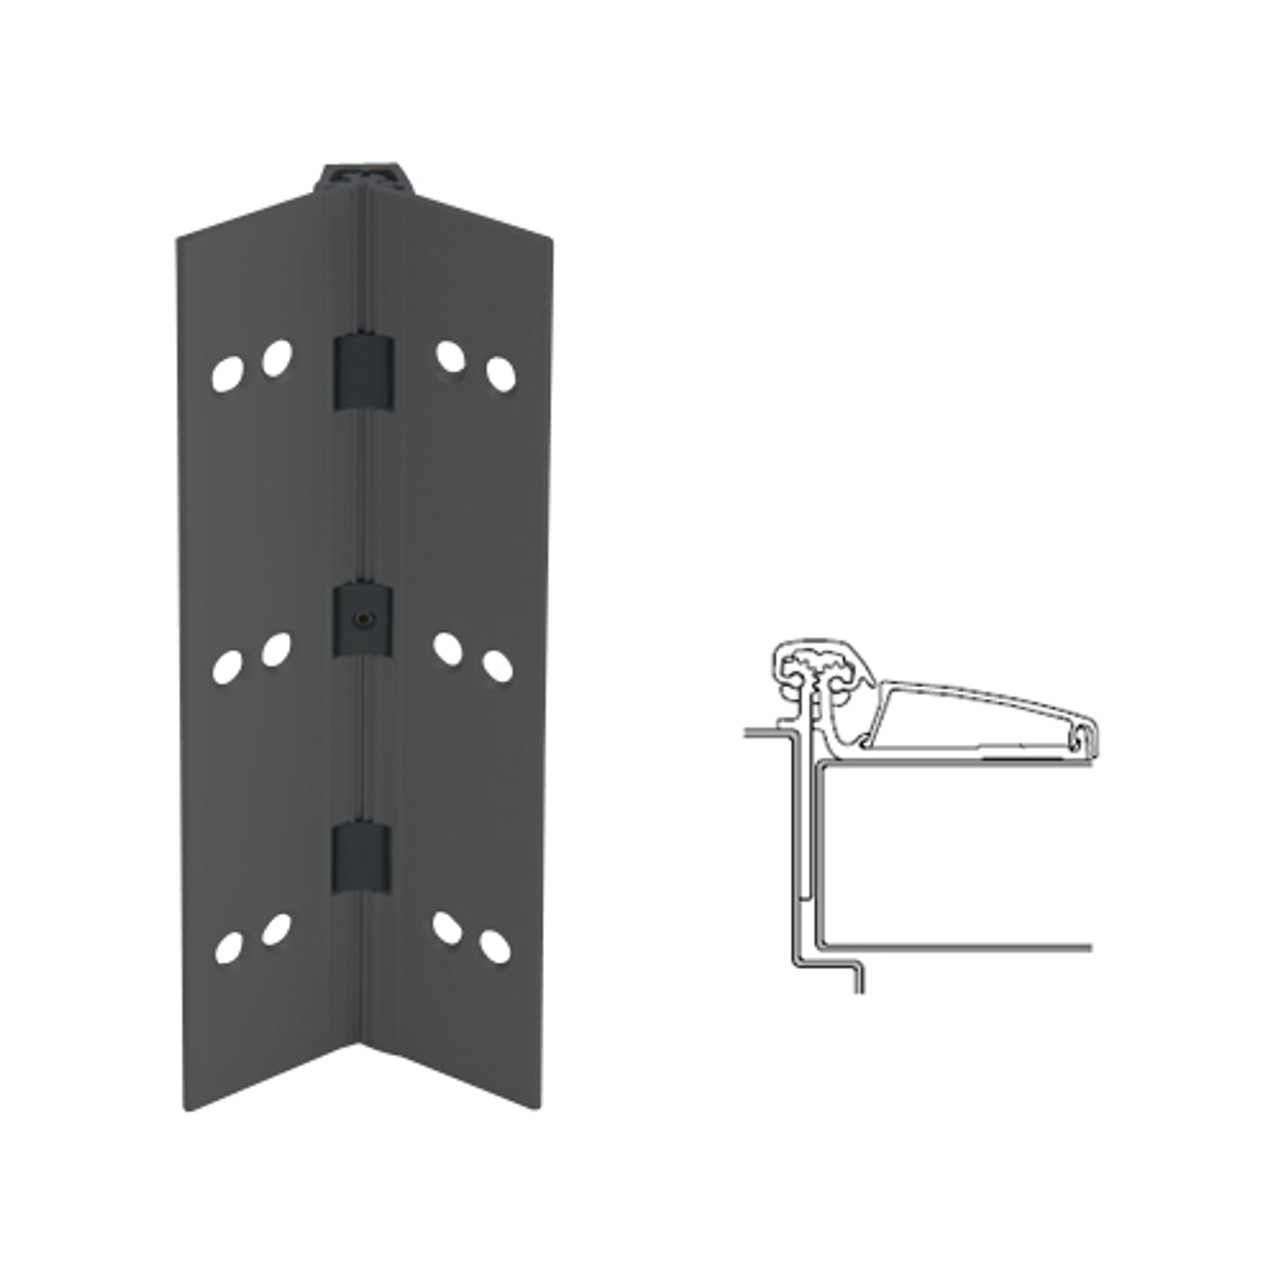 045XY-315AN-85-TF IVES Adjustable Half Surface Continuous Geared Hinges with Thread Forming Screws in Anodized Black